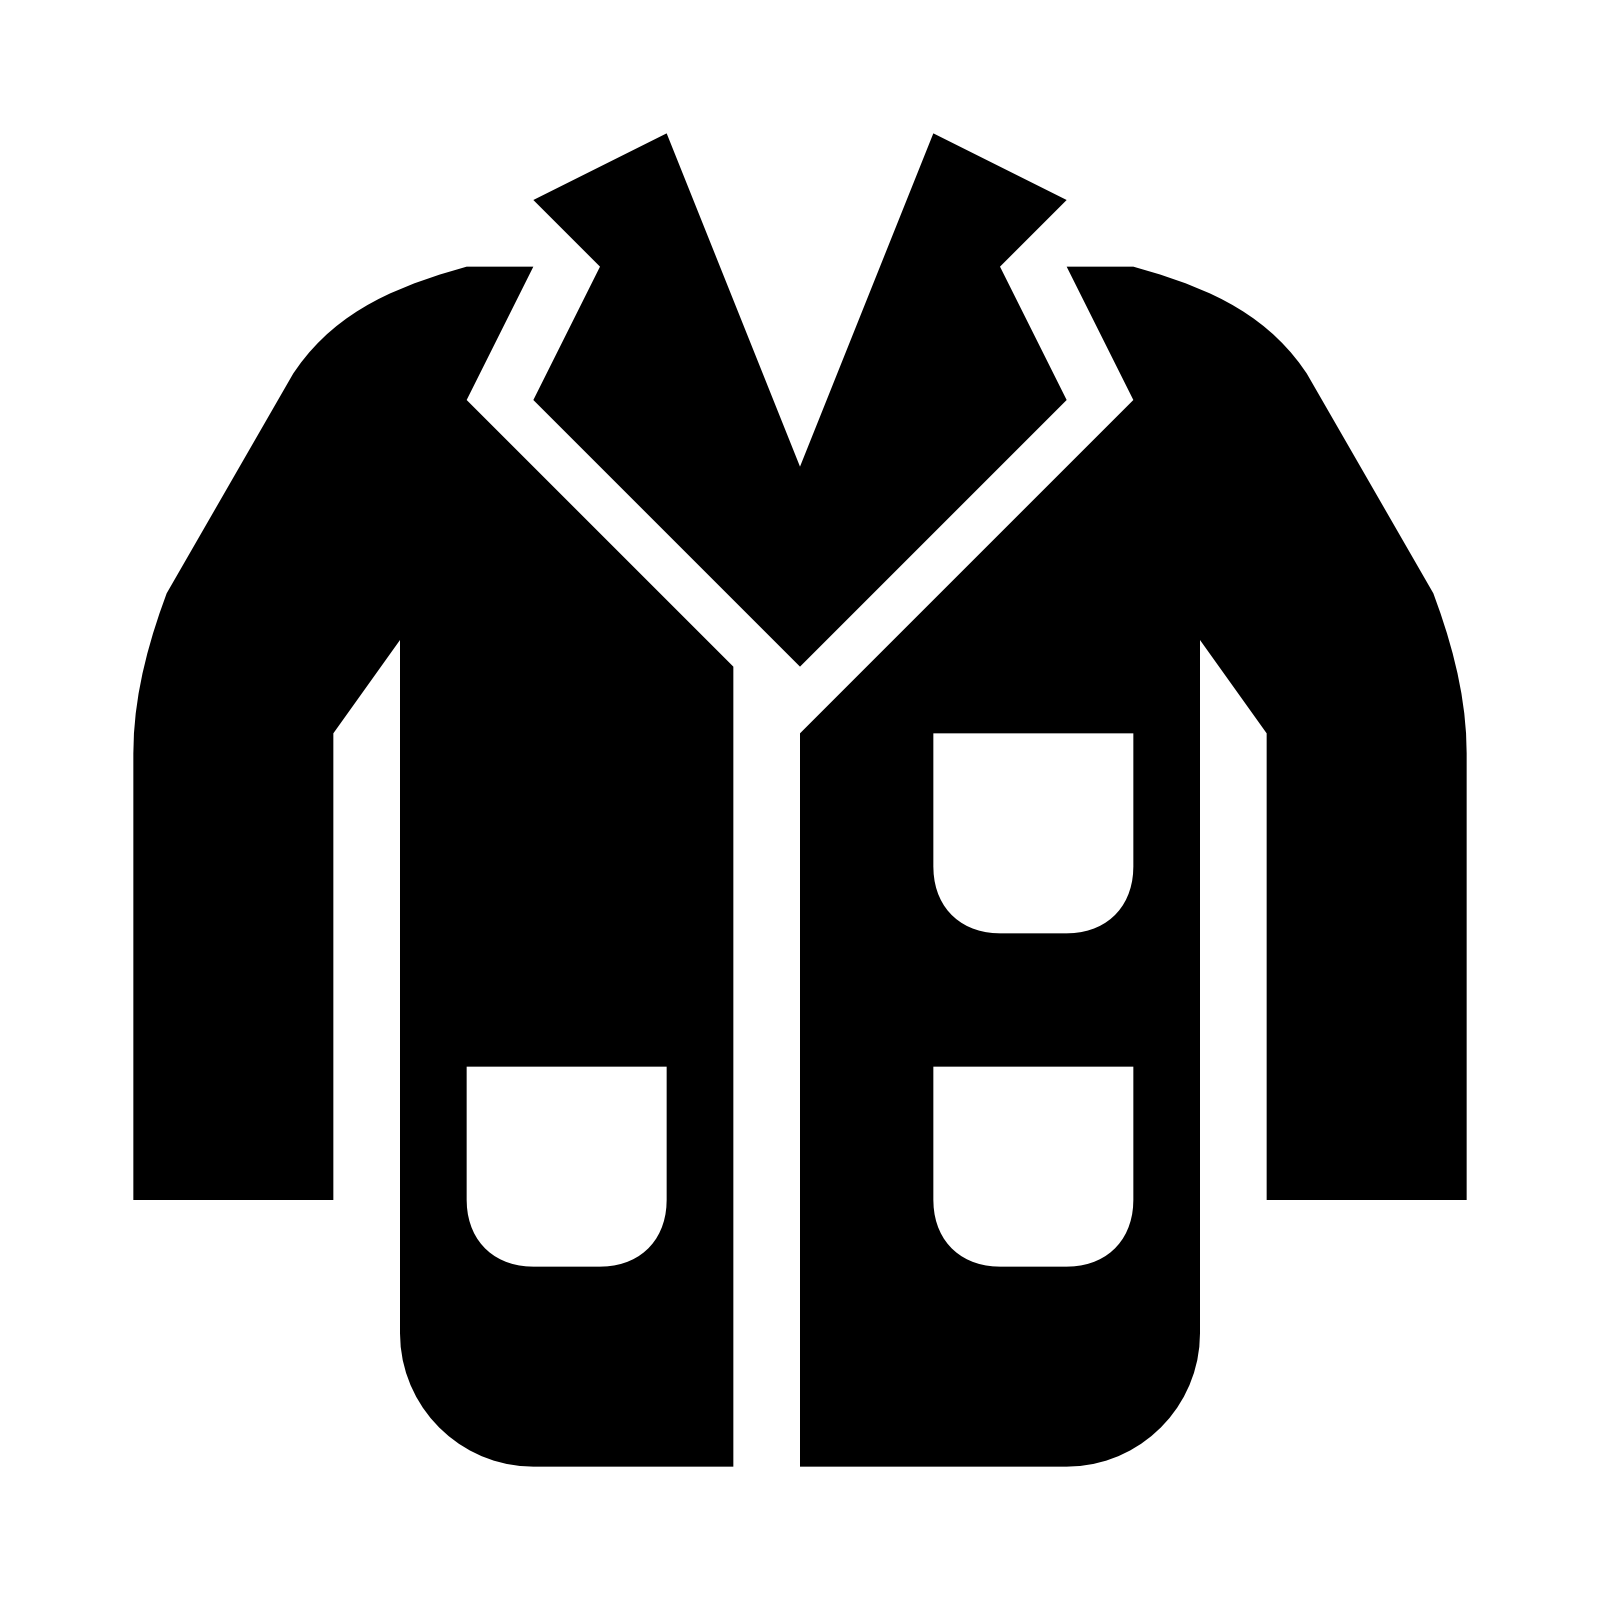 This Is The Lab Coat A Doctor Or Scientist Would Wear. It Opens Right Down - Wear, Transparent background PNG HD thumbnail